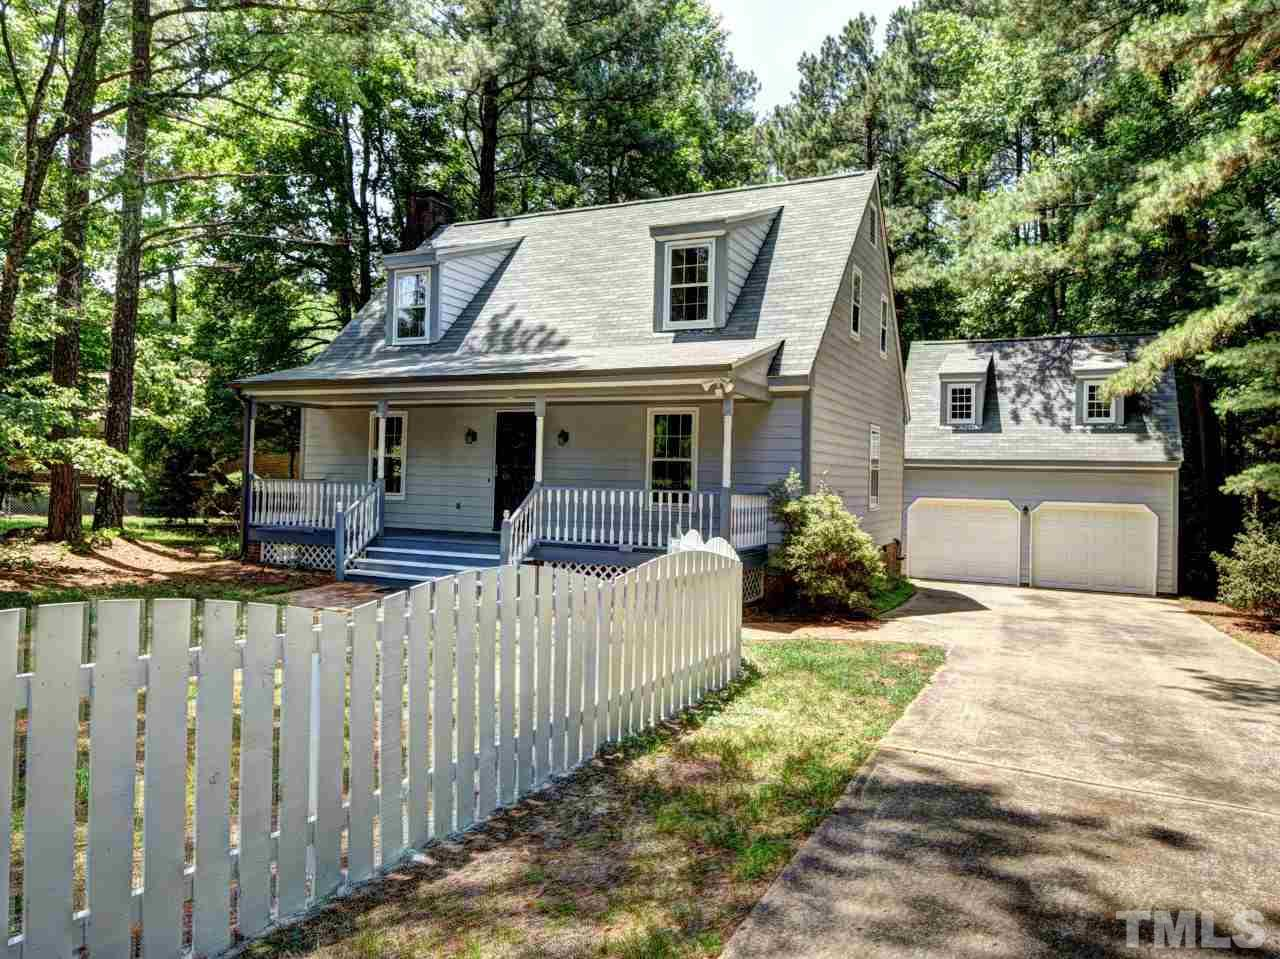 Updated & Well Maintained-Move In Ready! 3 BR 2 1/2 Bath w/HUGE .71 Acre Fully Fenced & Level Lot. Recent updates: Fresh Paint, Roof & Gutters, New Plumbing & Fixtures (PEX), Appliances, Walk-in Master Shower, Septic Pumped & Updated. Detached 2 Story Garage (or Workshop) w/Sep. 100 Amp Service, Screened Porch, Fiber Cement Siding, Rocking Chair Front Porch, Wood Burning/Gas Log Fireplace. NO HOA Fees or City Taxes! Needs New Carpet. Seller Wants Buyer to Choose! Fair Carpet Allowance w/Acceptable Offer.